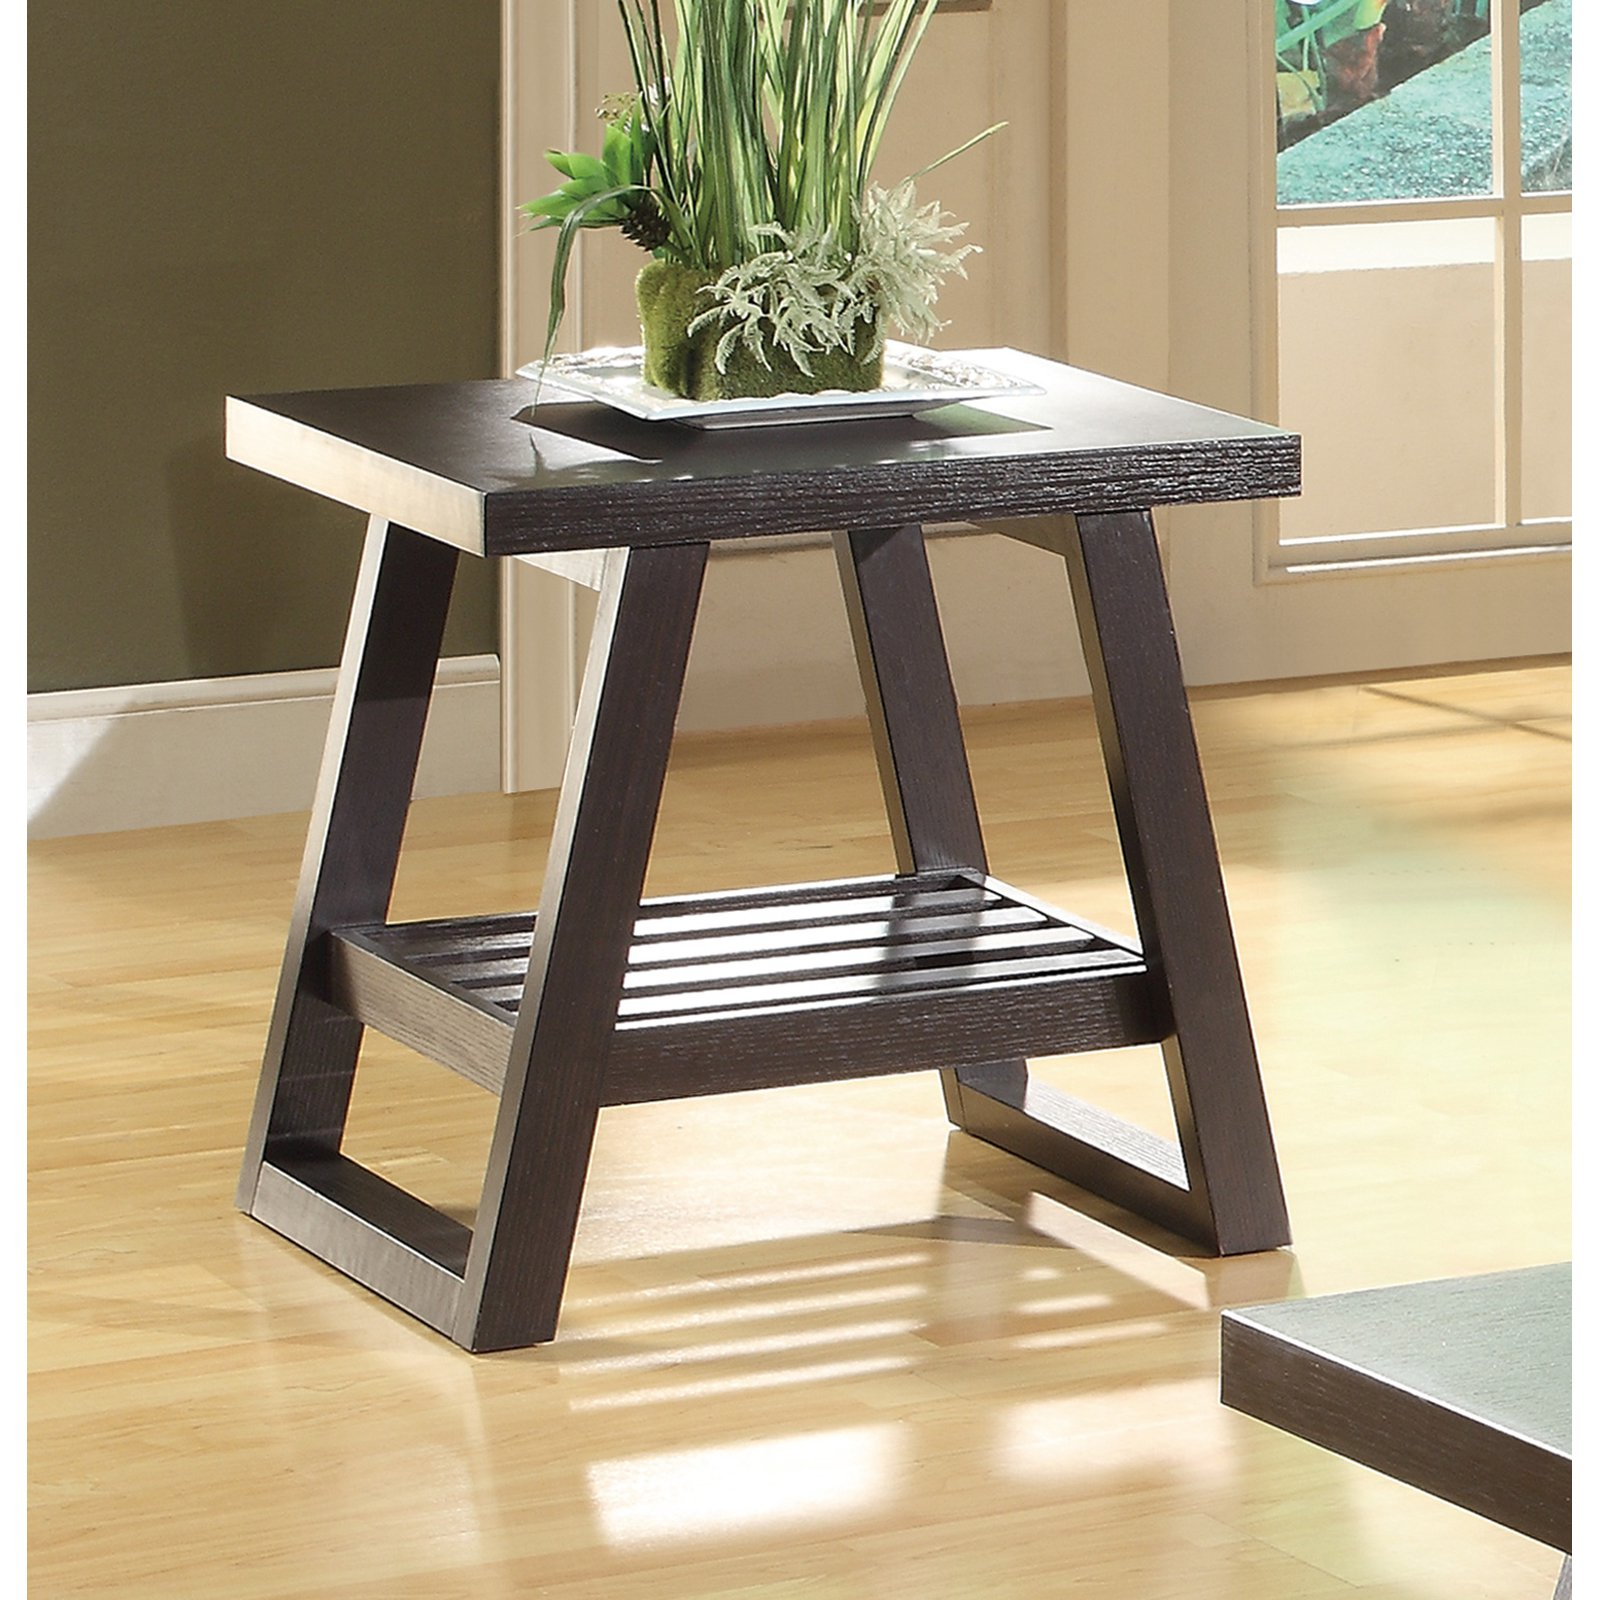 Coaster Furniture Rectangular Wood End Table - Cappuccino